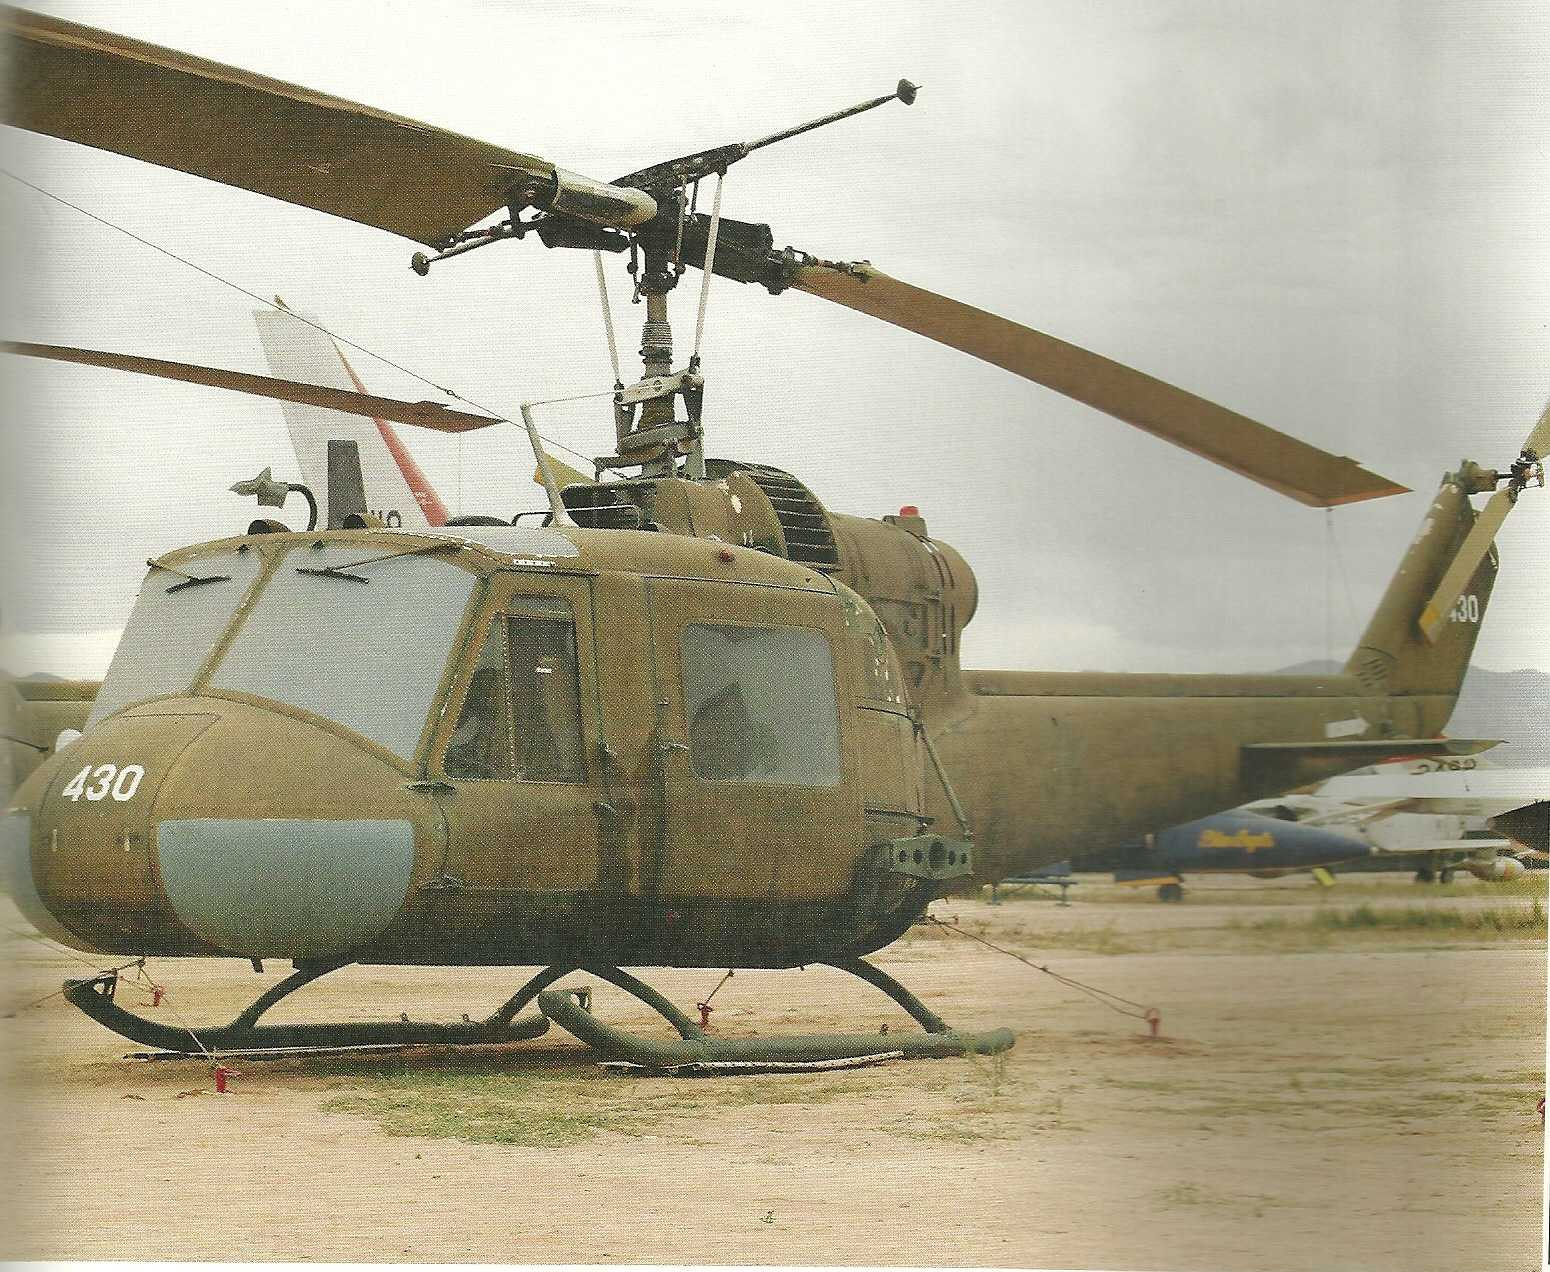 174th ahc vietnam - Contact Was Made Between Scott Marchand The Museum S Director Of Collections And Aircraft Restoration Your Webmaster And The 174th Ahc Association